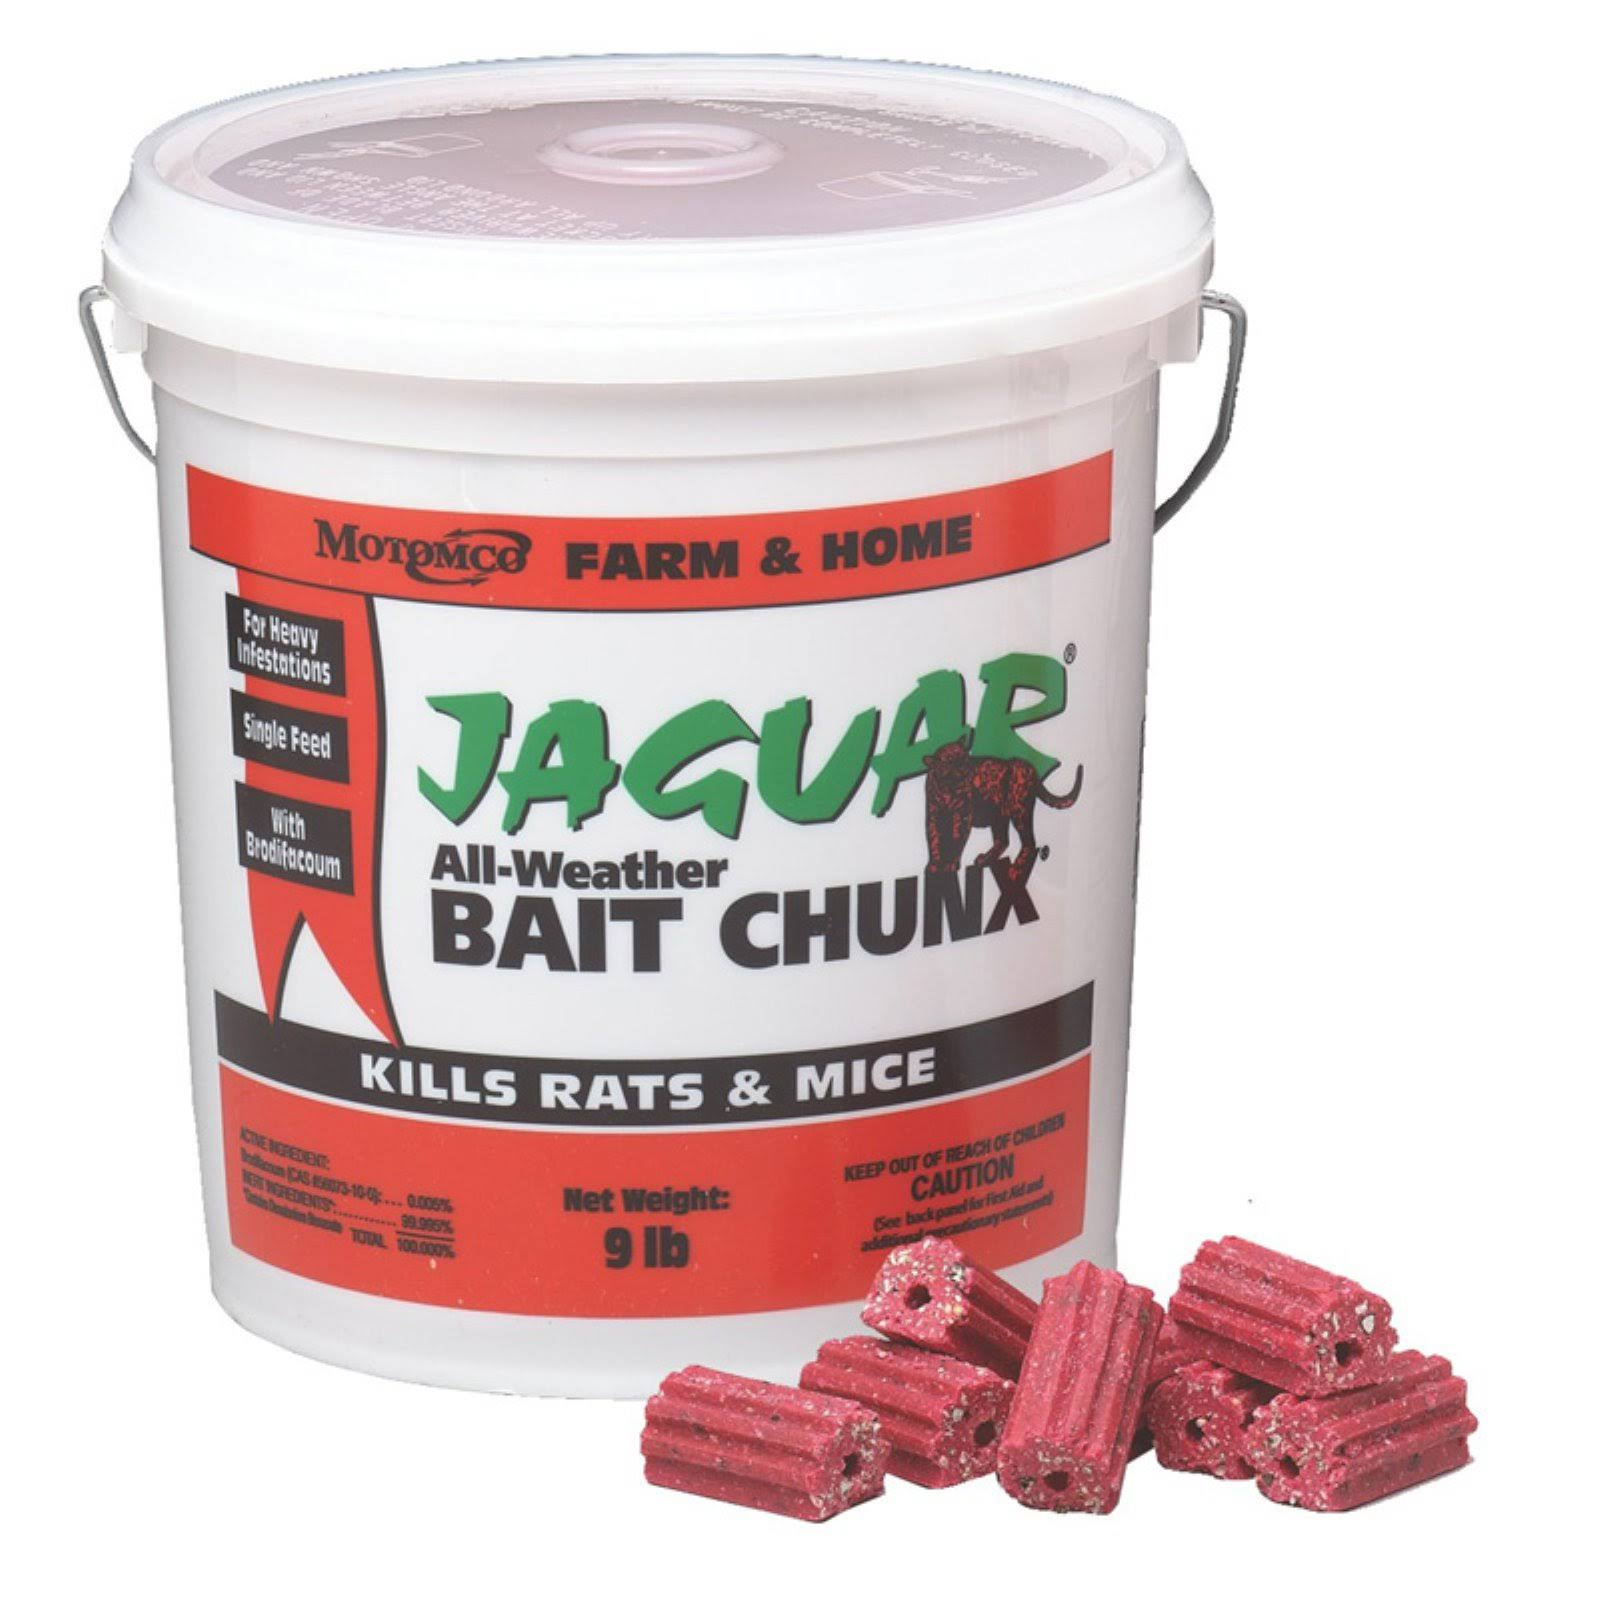 Motomco Jaguar Mouse and Rat Bait Chunx - 9lb